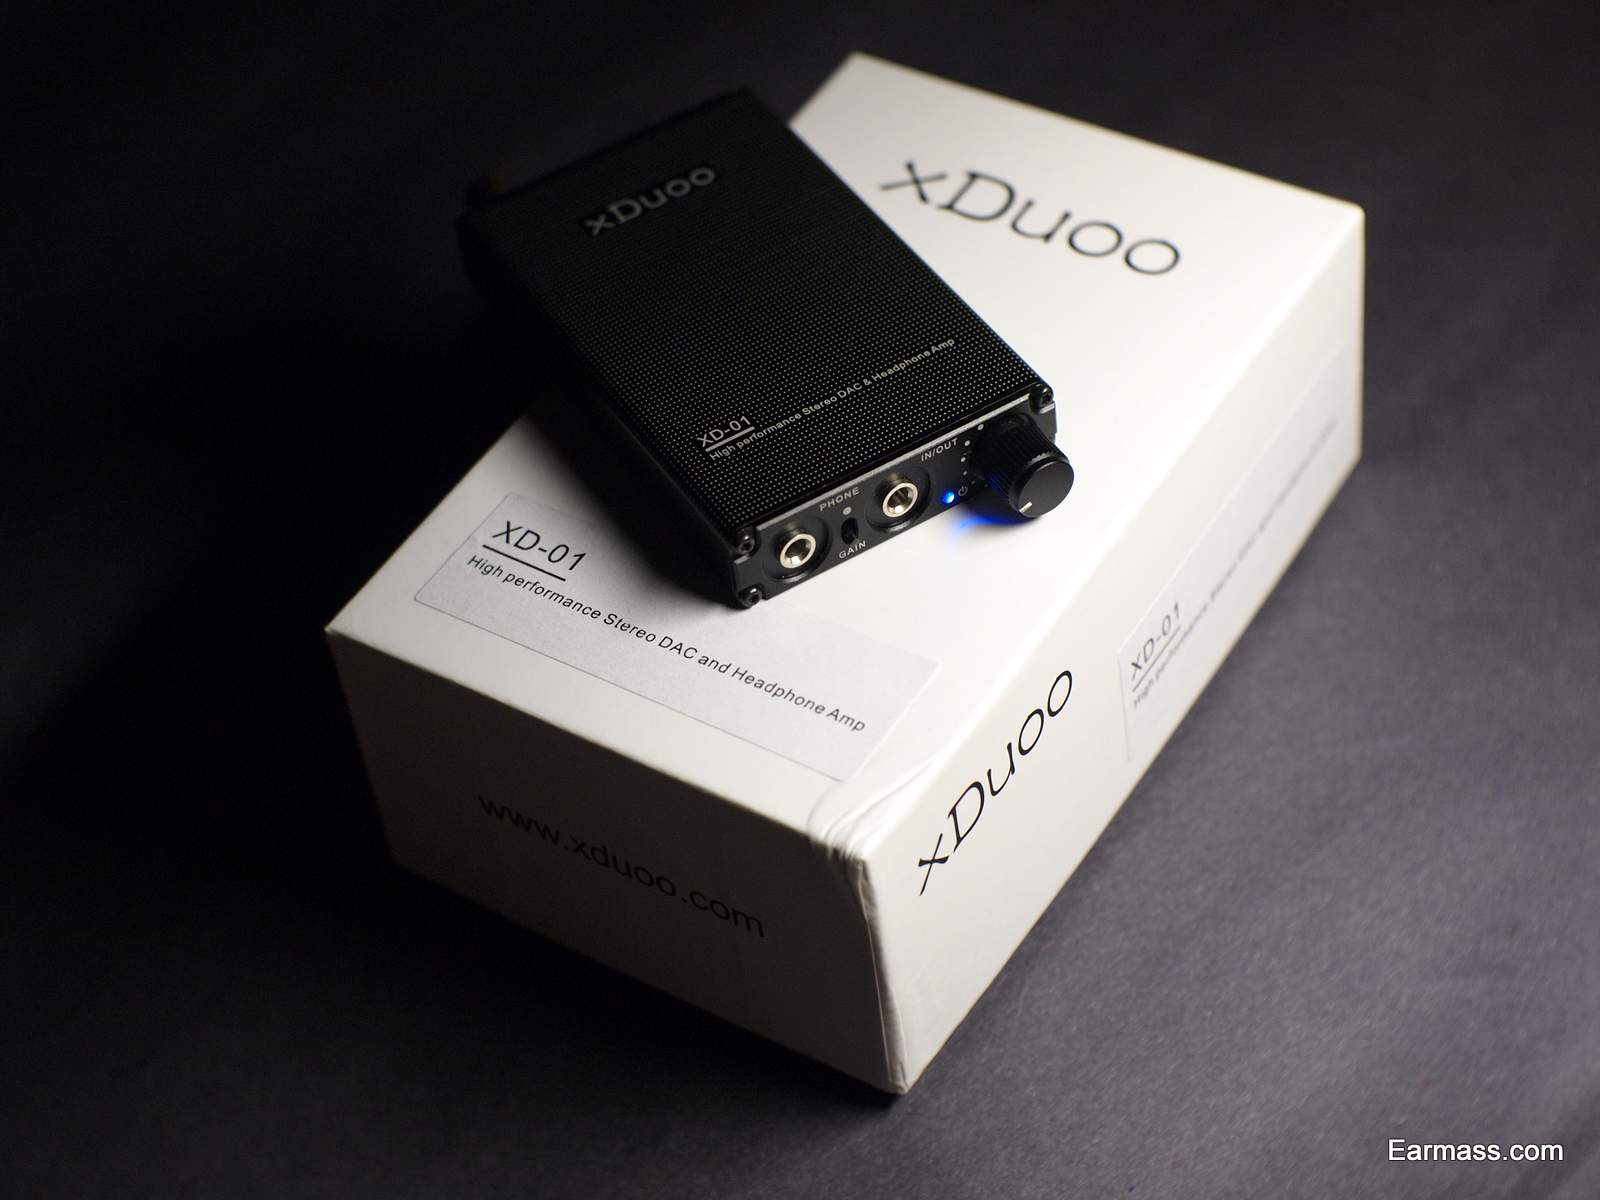 Xduoo Xd 01 A Dac Amp Combo That Lacks Refinement Earmass 05 Portable Packaging Box Is Beautiful And Simple